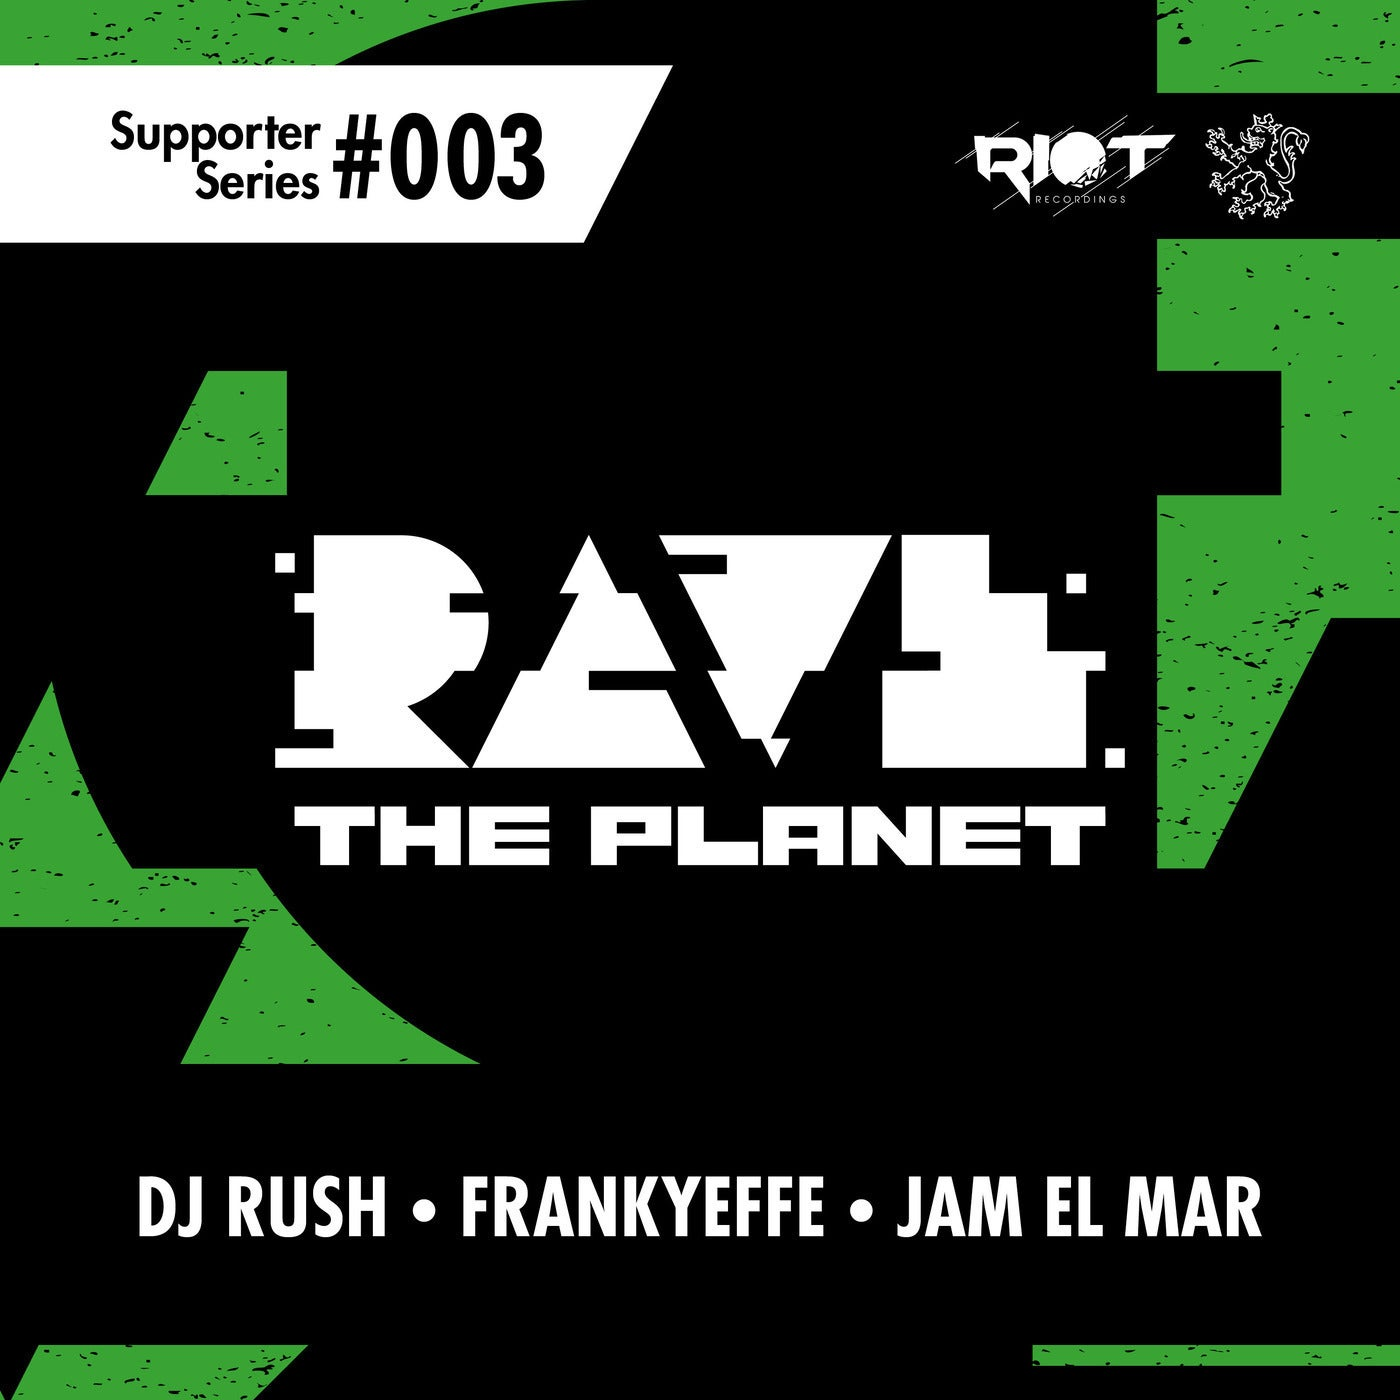 Download Rave the Planet: Supporter Series, Vol. 003 on Electrobuzz